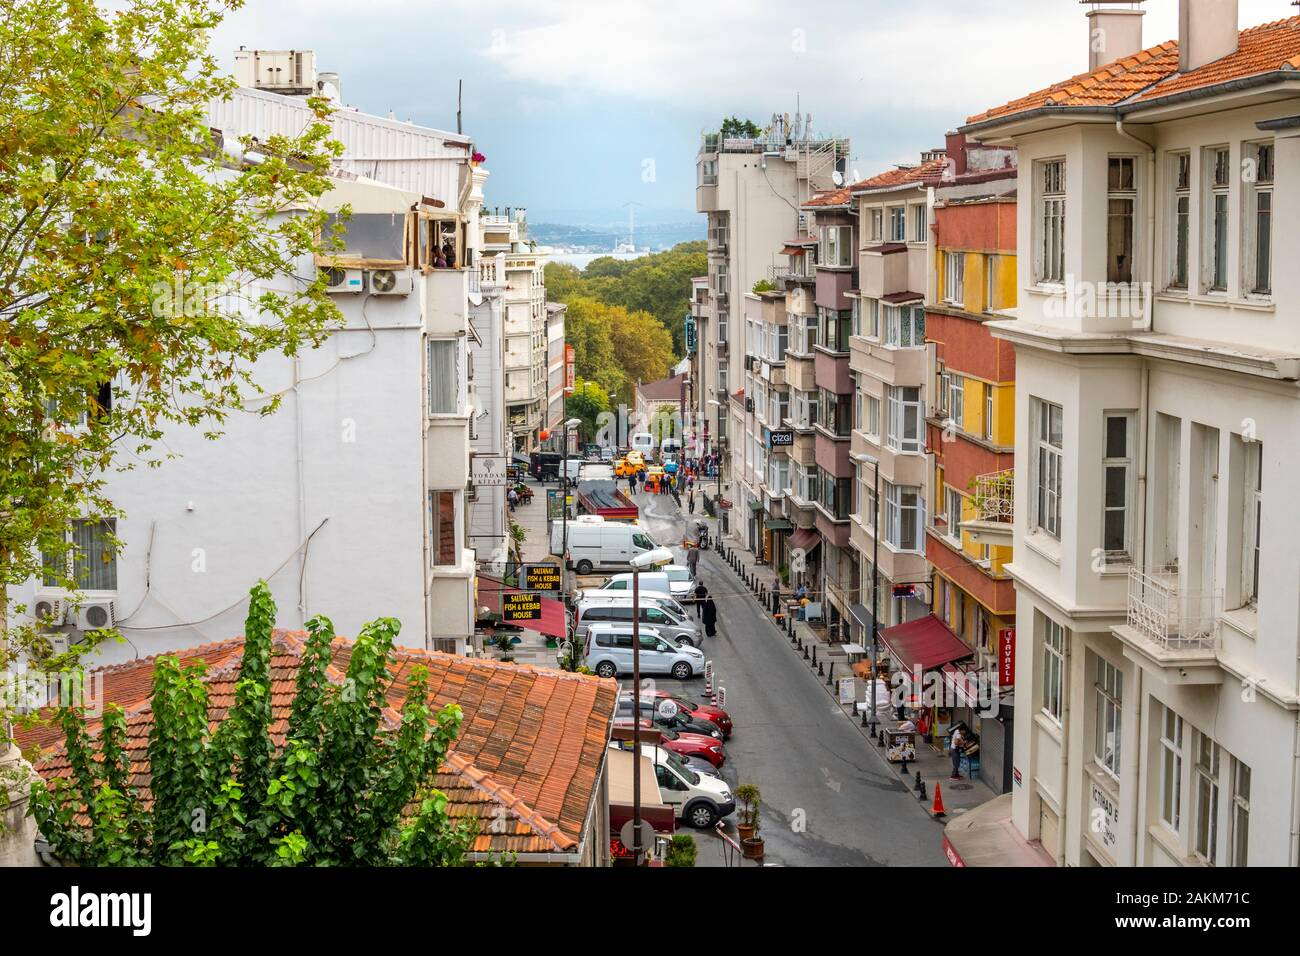 View from an upper level window overlooking a busy street in Istanbul, Turkey, with the Bosphorus Bridge and Golden Horn in the distance. Stock Photo